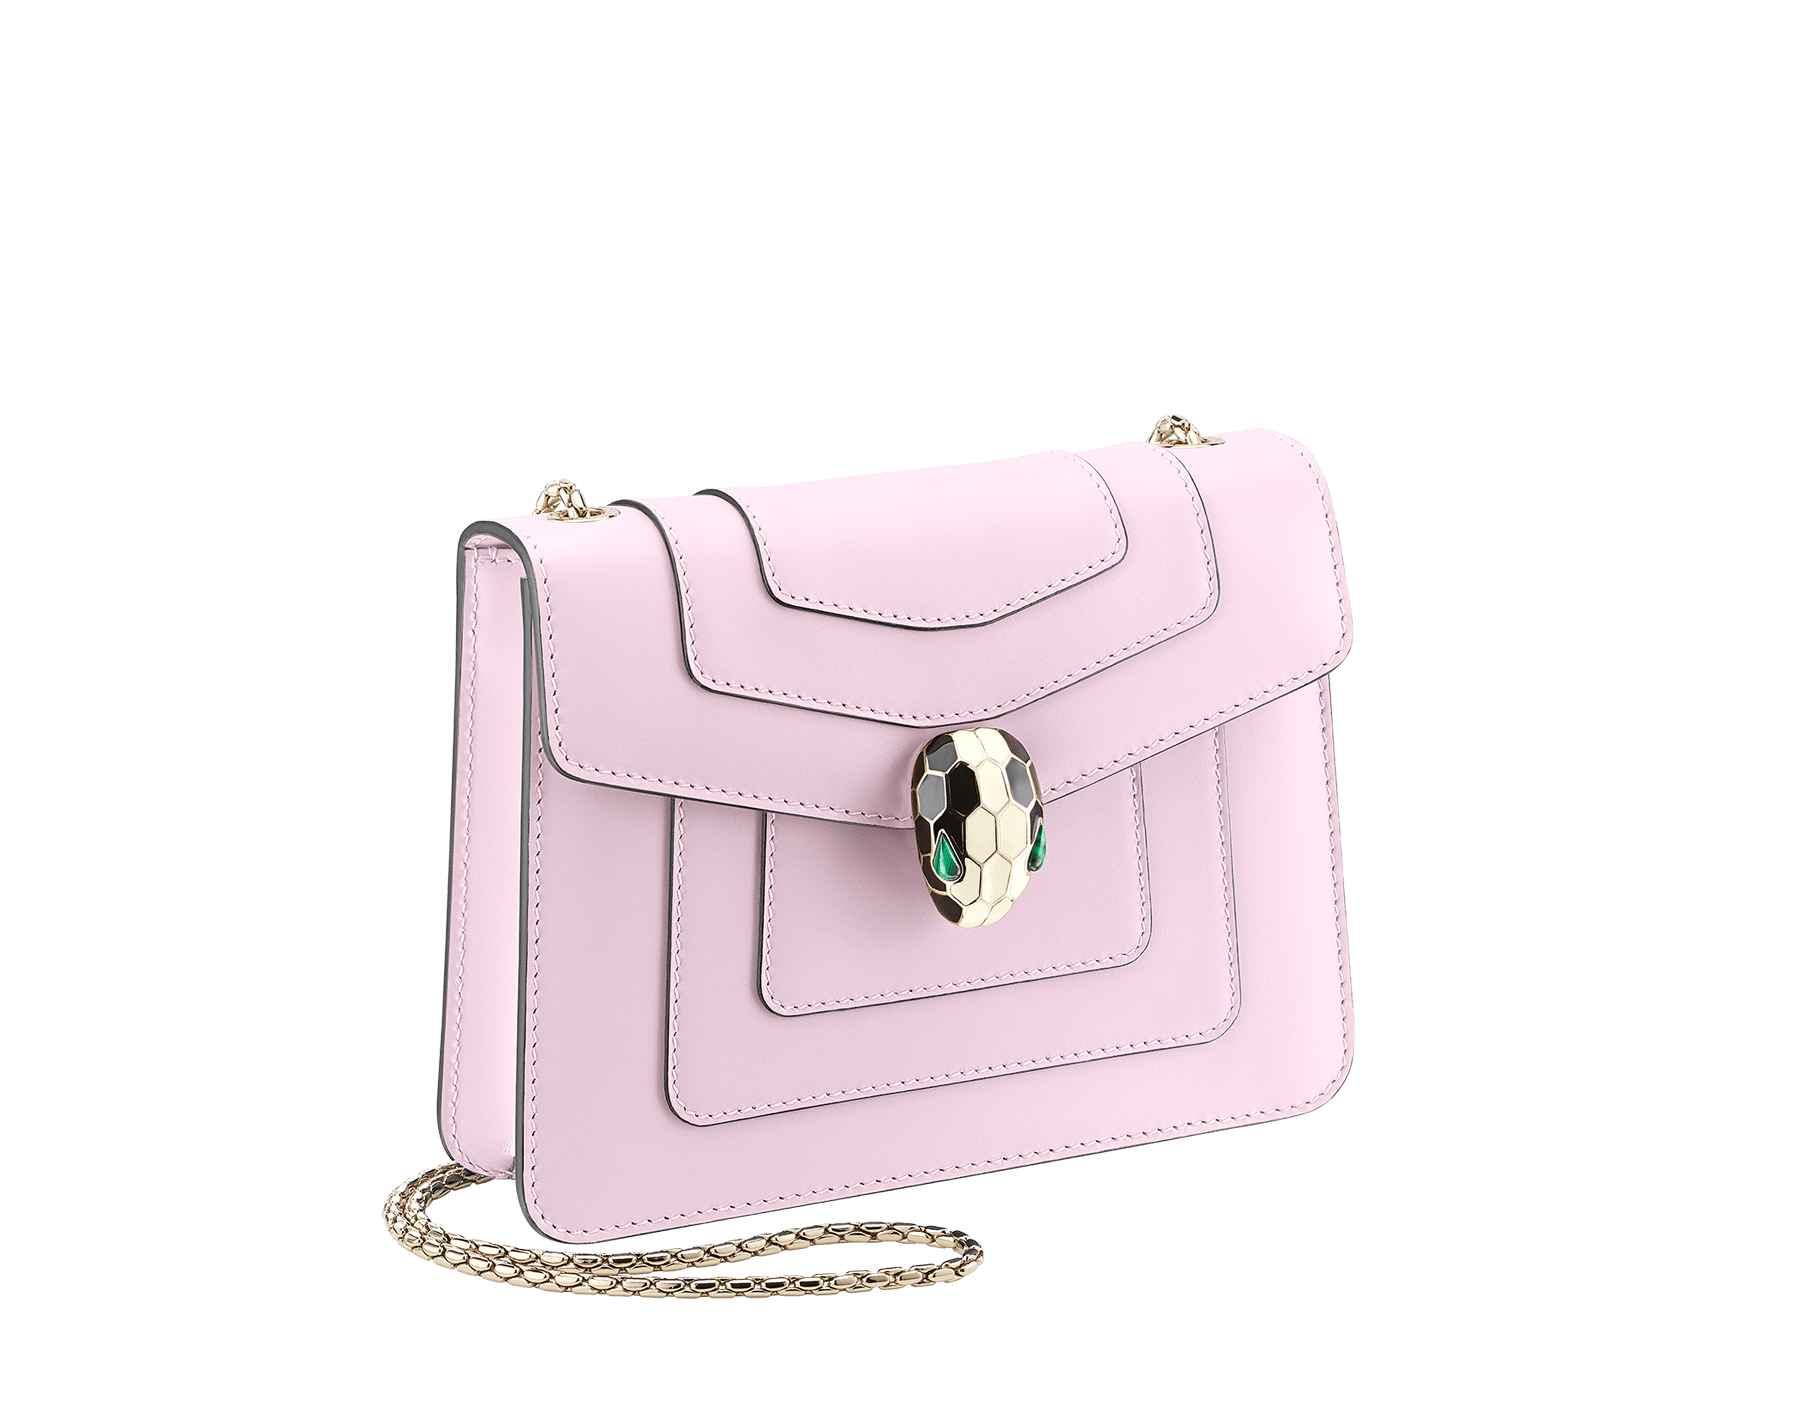 """Serpenti Forever "" crossbody bag in carmine jasper calf leather. Iconic snakehead closure in light gold plated brass enriched with black and white enamel and green malachite eyes 422-CLc image 2"